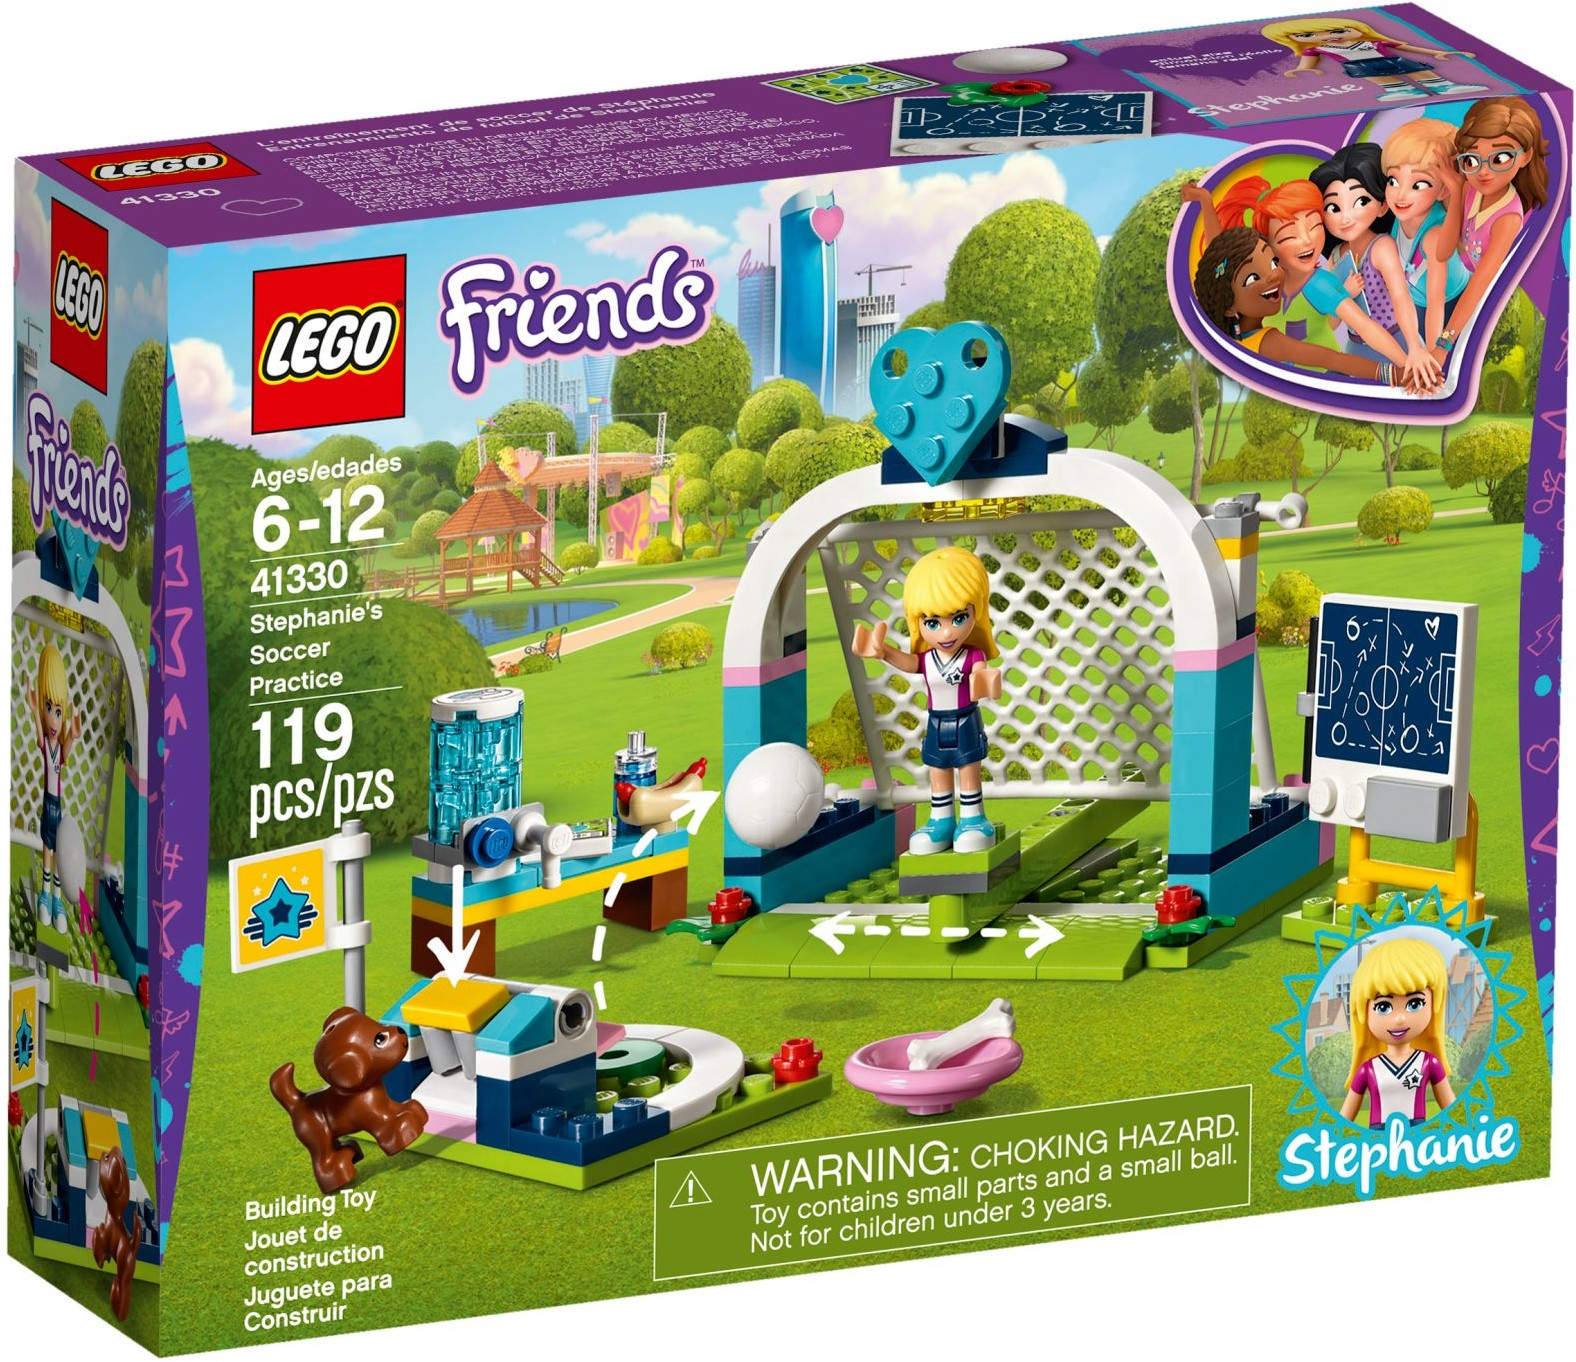 LEGO Friends Sets: 41330 Stephanie's Soccer Practice NEW *Damaged Box*